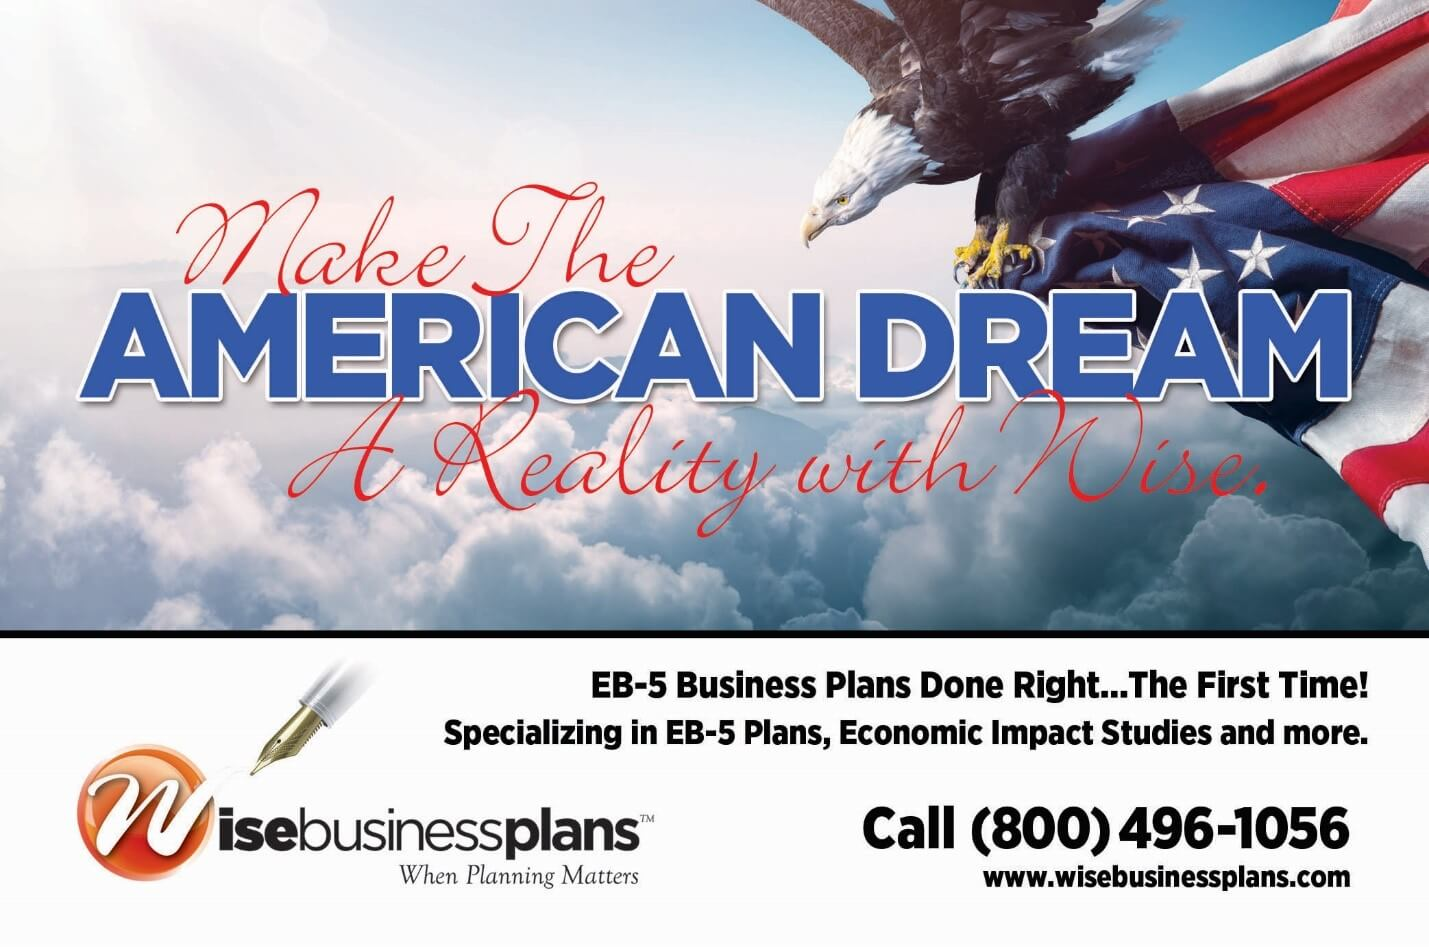 Wise_Immigration-1.jpg2_-1 Form an EB-5 Business Plan | Wise Business Plans®